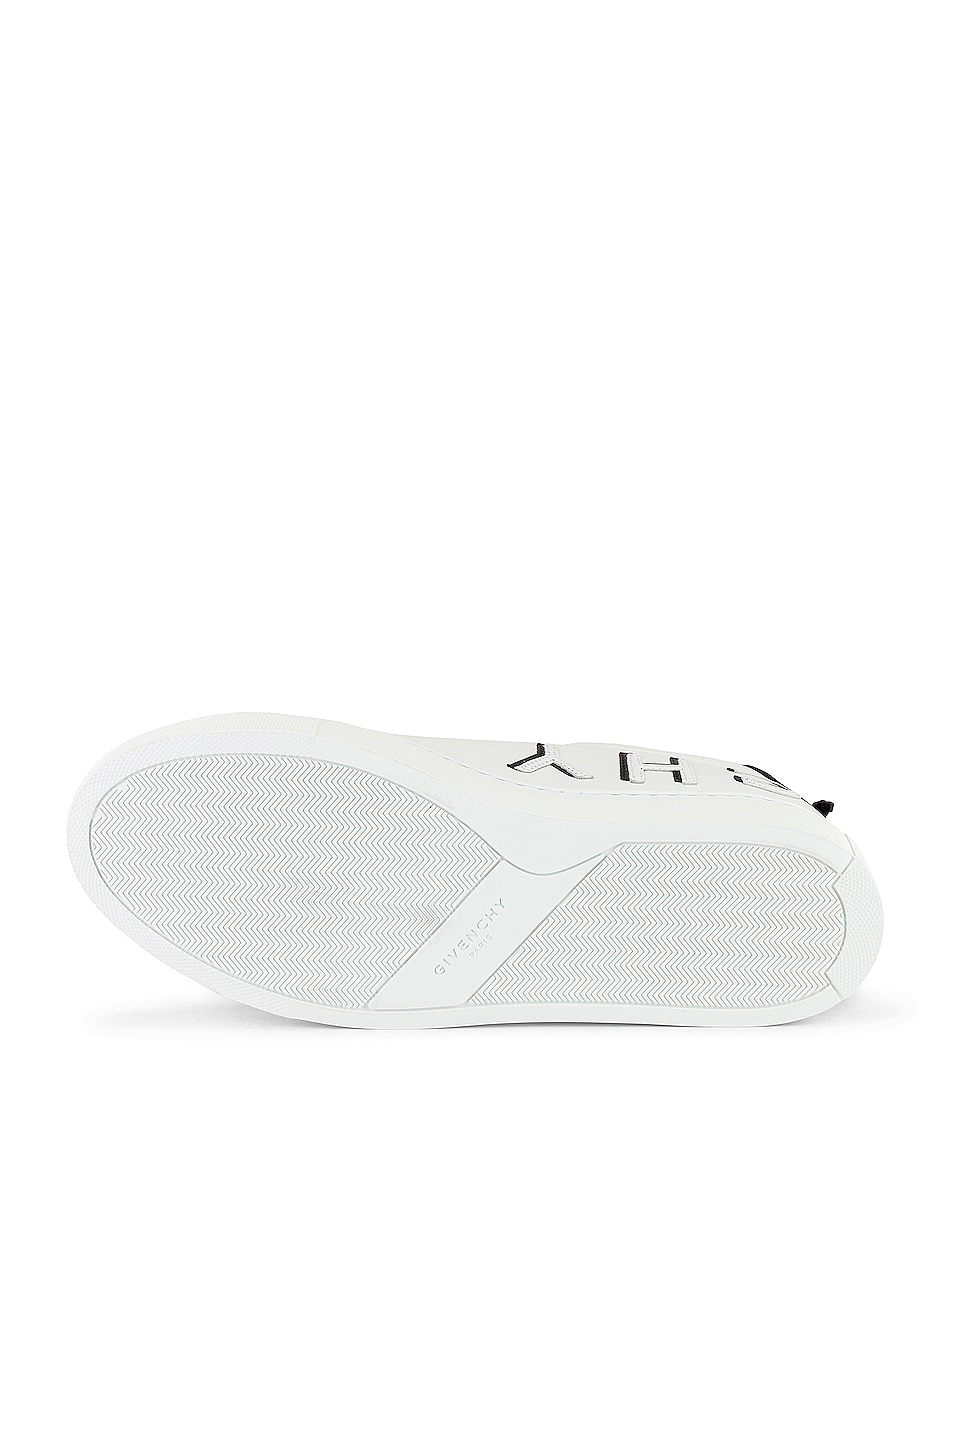 Image 6 of Givenchy Urban Street Sneaker in White & Black